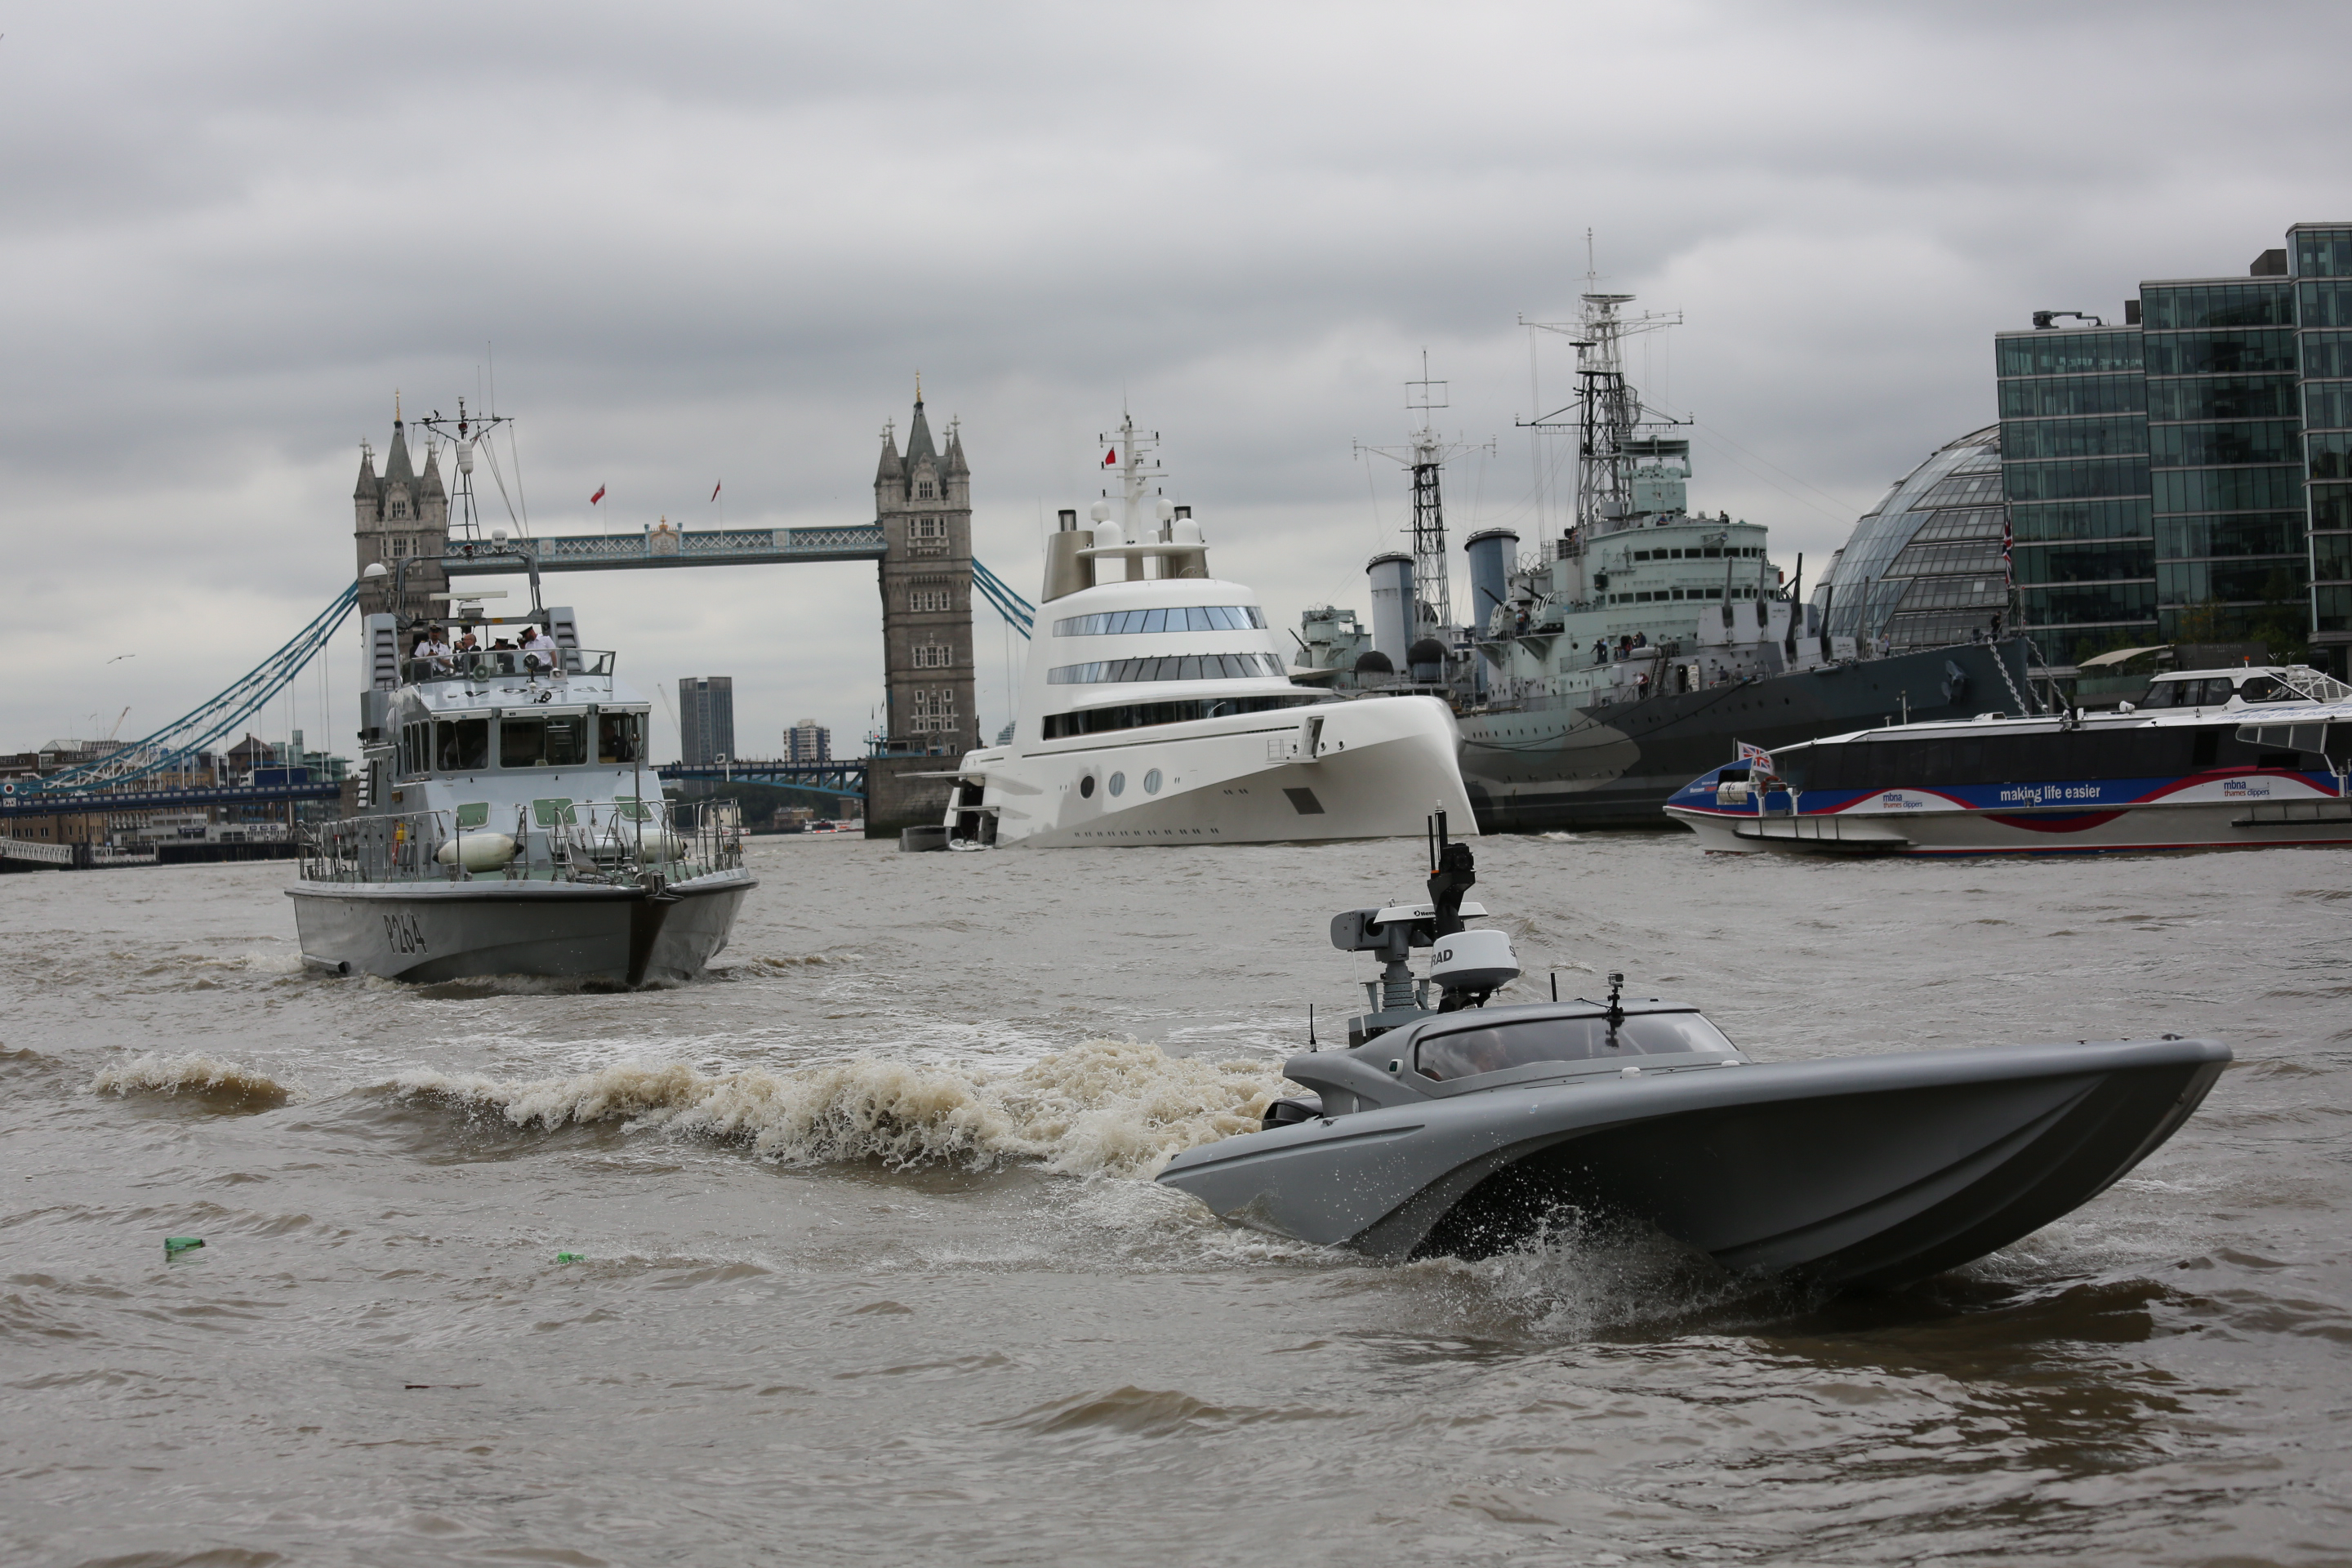 mod-mast-royal-navy-drone-boat-tower-bridge4.jpg